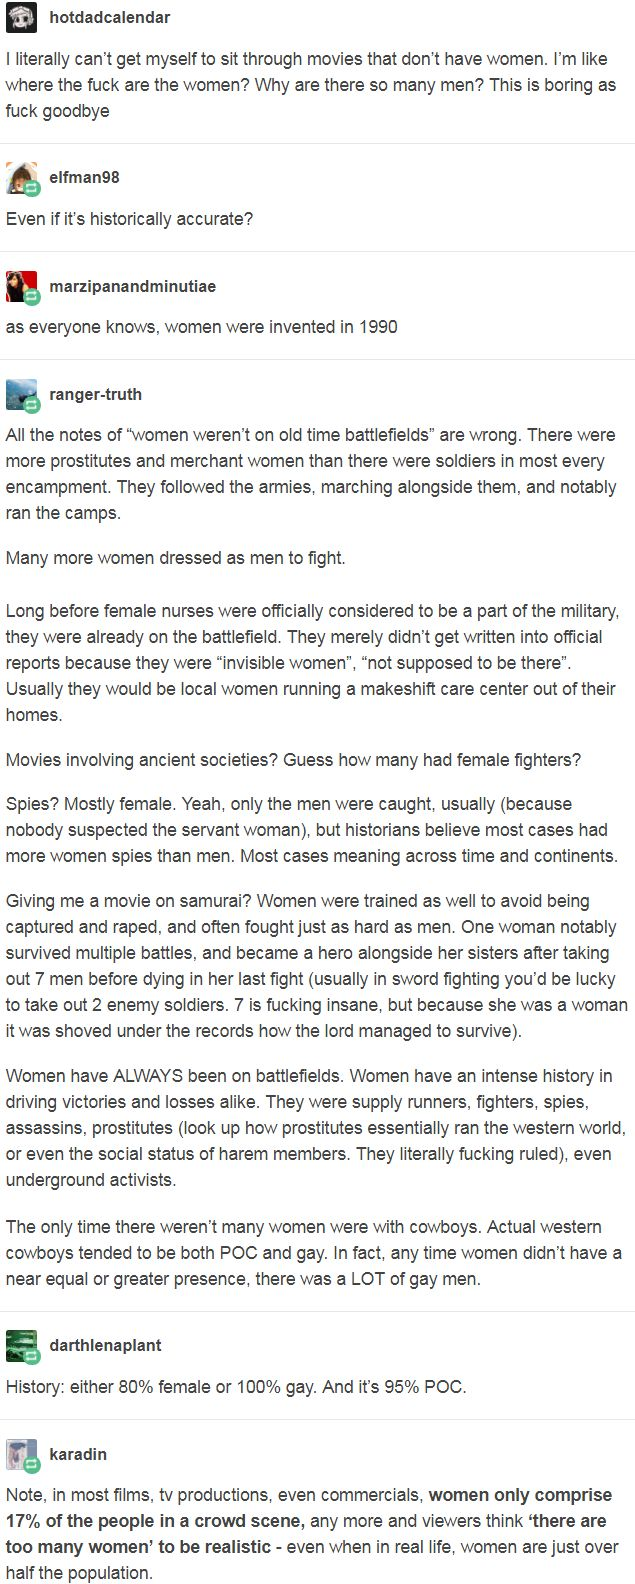 Women have ALWAYS been on battlefields. Women have an intense history in driving victories and losses alike. They were supply runners, fighters, spies, assassins, prostitutes (look up how prostitutes essentially ran the western world, or even the social status of harem members. They literally fucking ruled), even underground activists. http://leftboob-enthusiast.tumblr.com/post/168144775263/karadin-darthlenaplant-ranger-truth